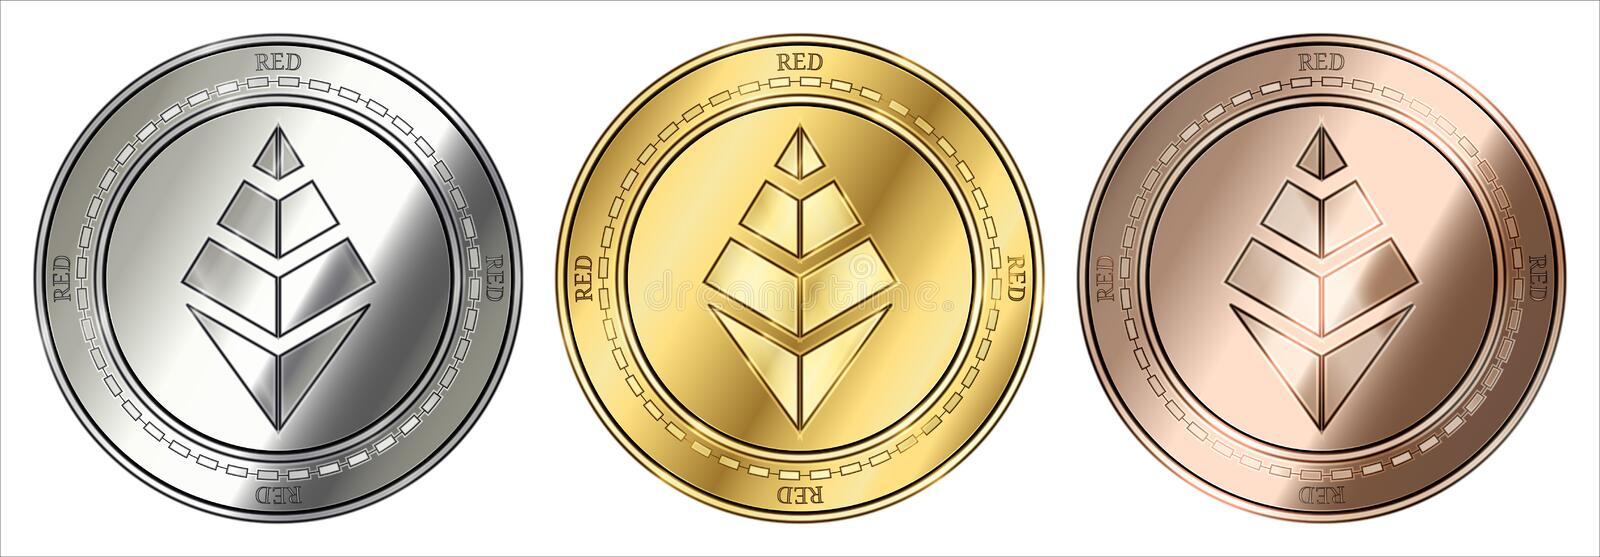 red coin cryptocurrency